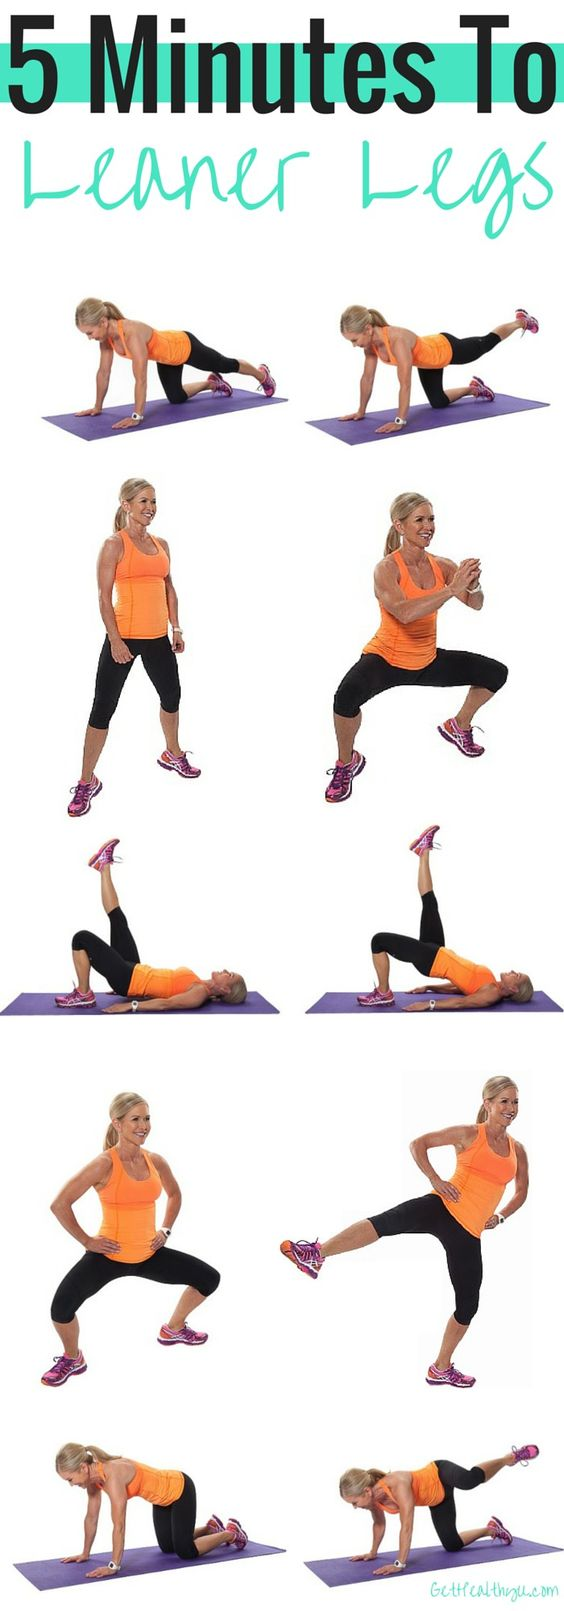 Pilates For Your Inner Thighs recommend